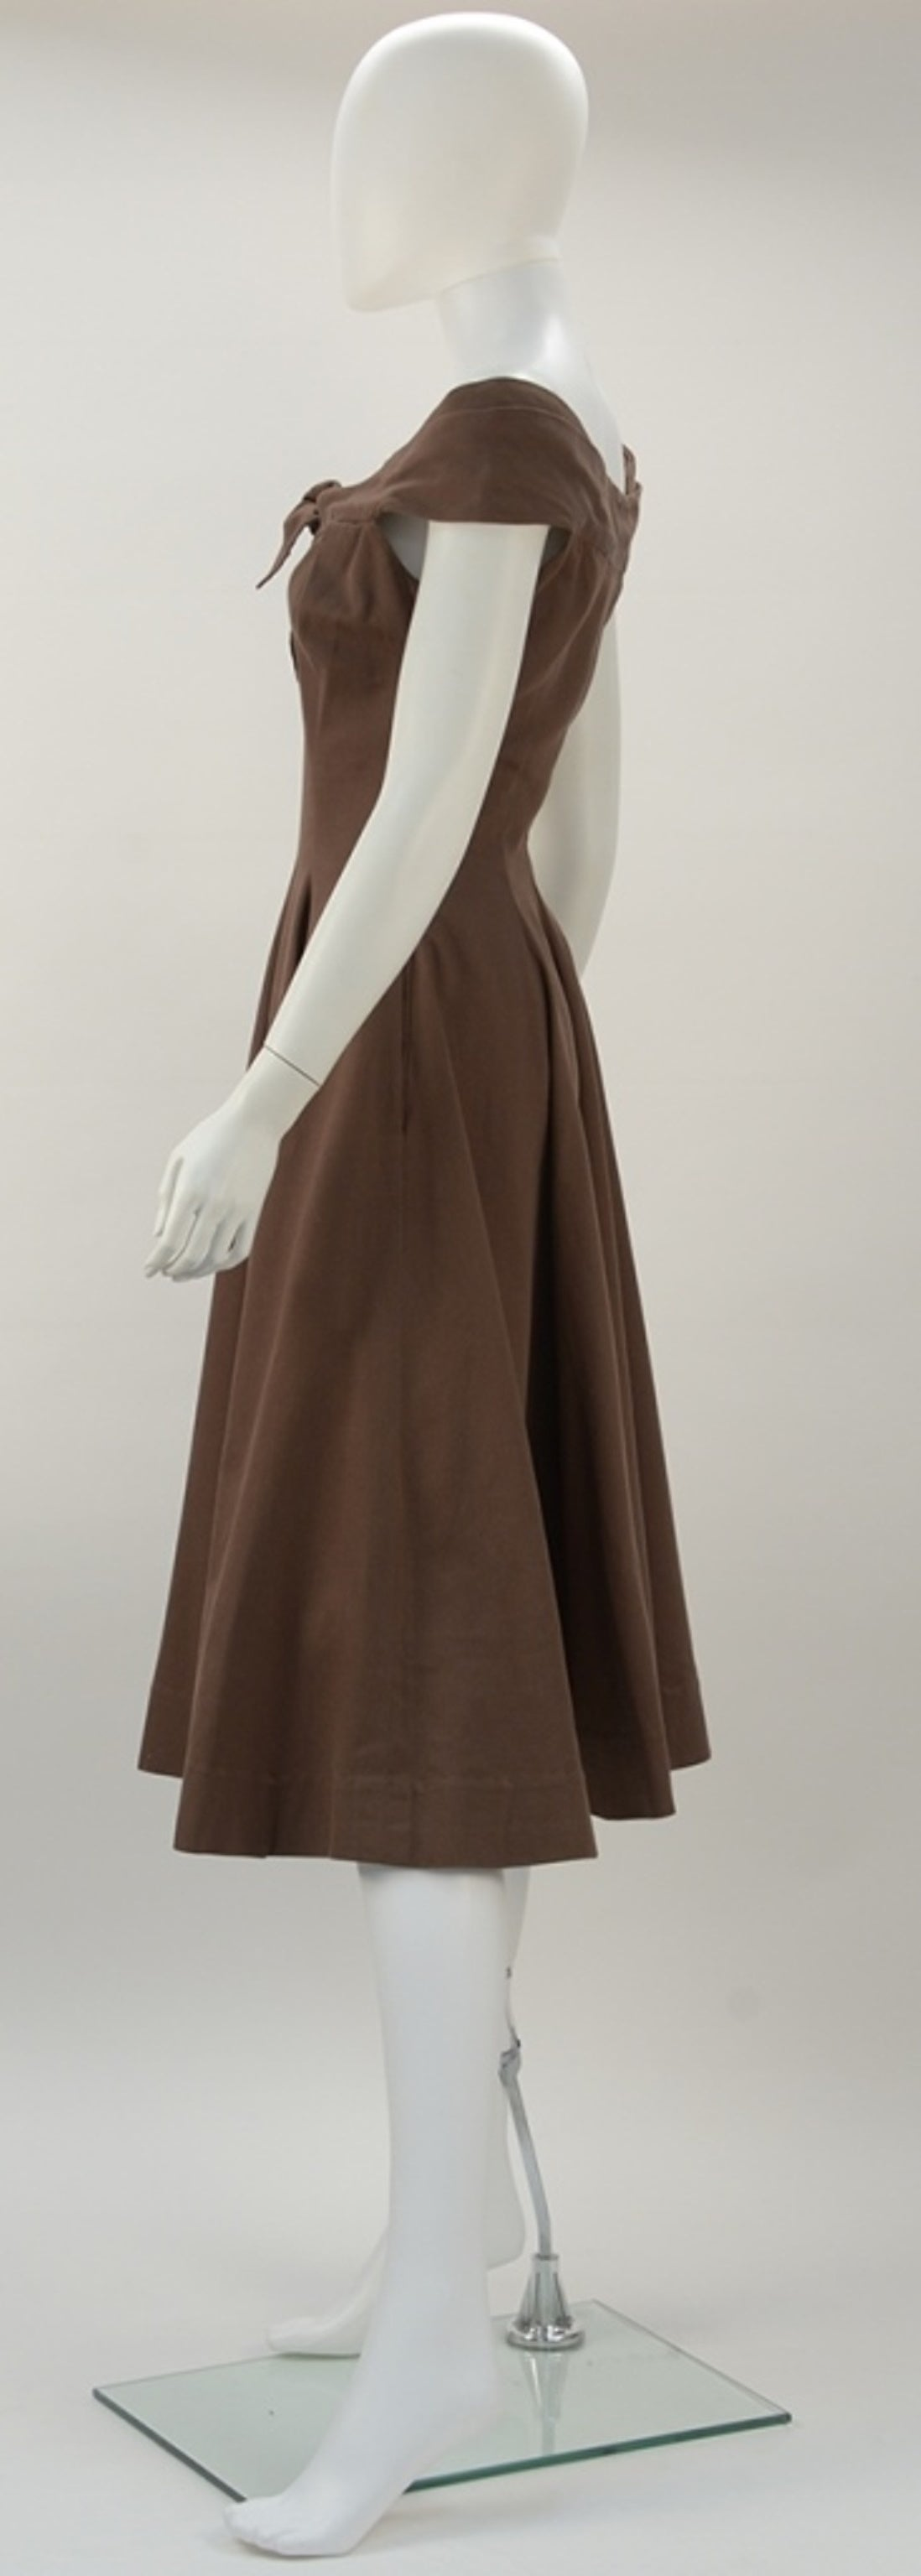 1930's Claire McCardell Brown Boatneck Dress 4